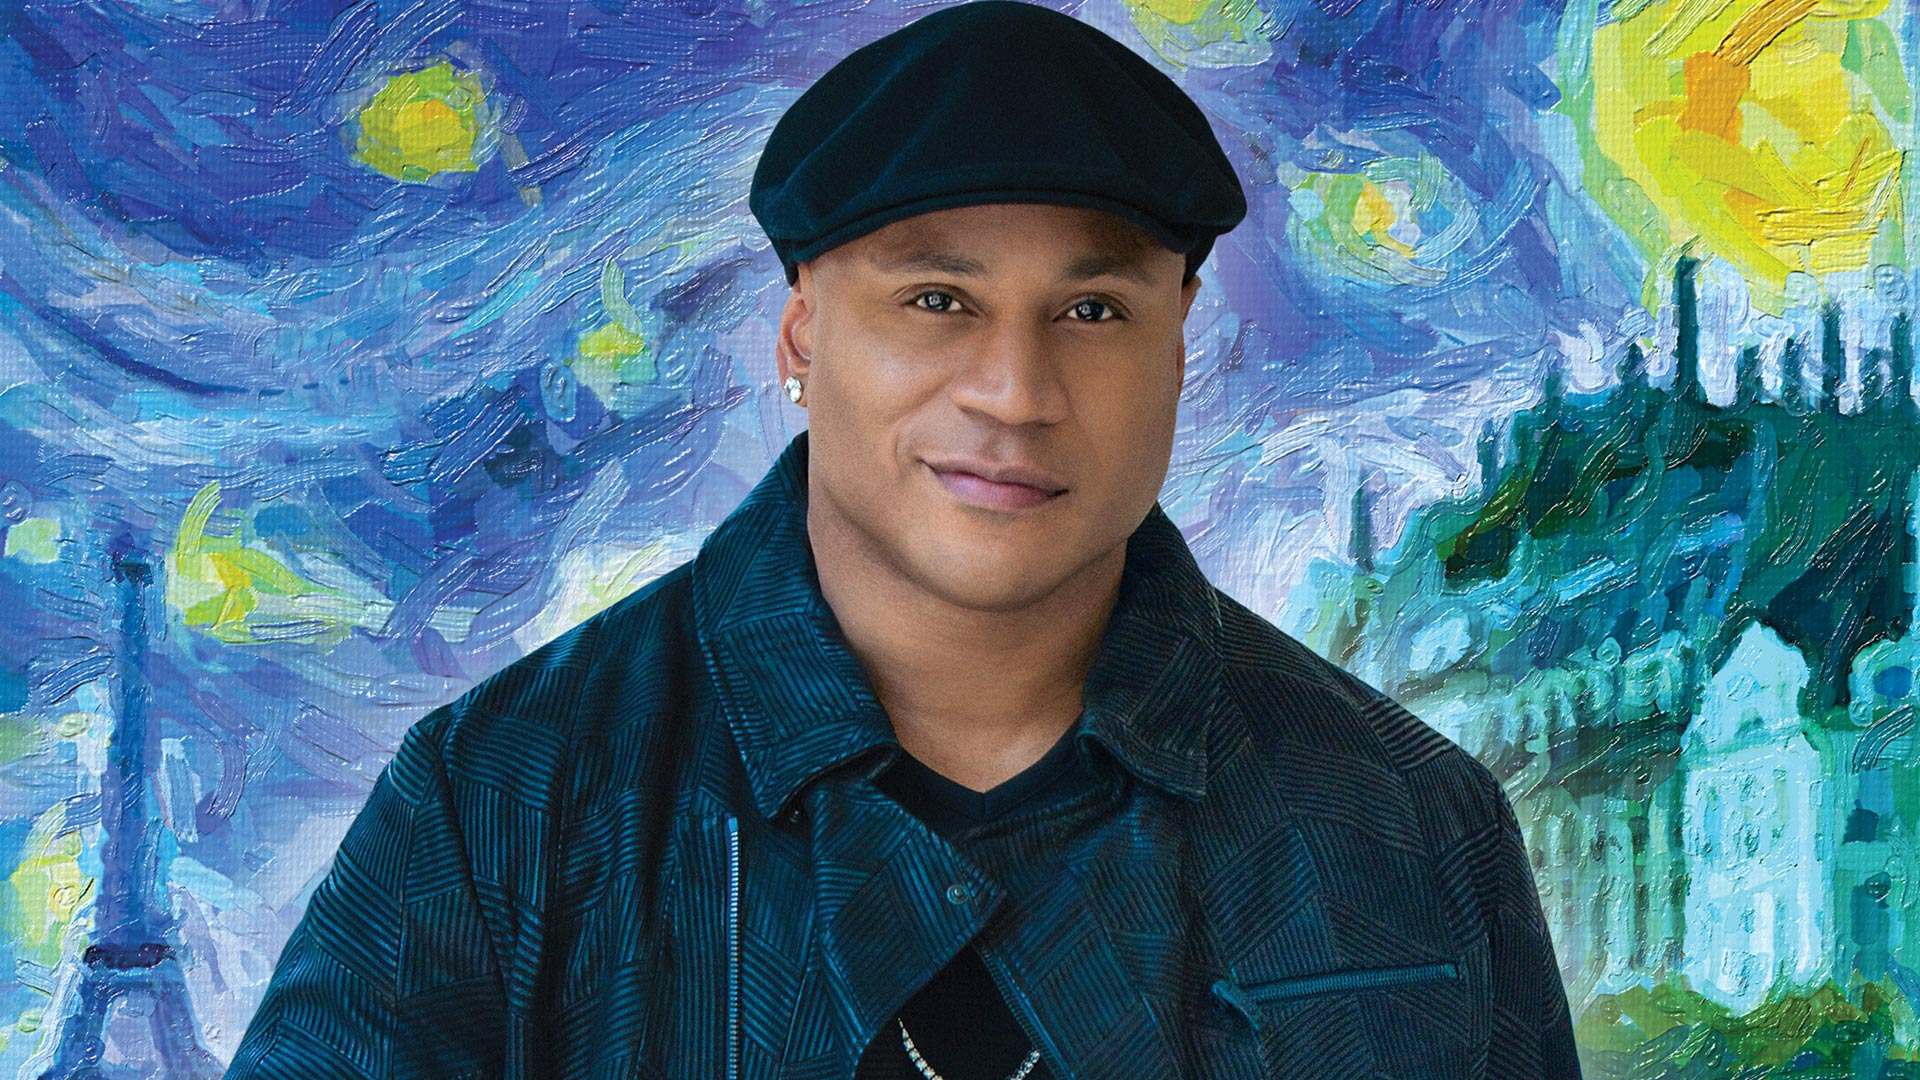 LL COOL J, especially when he shows his artistic side